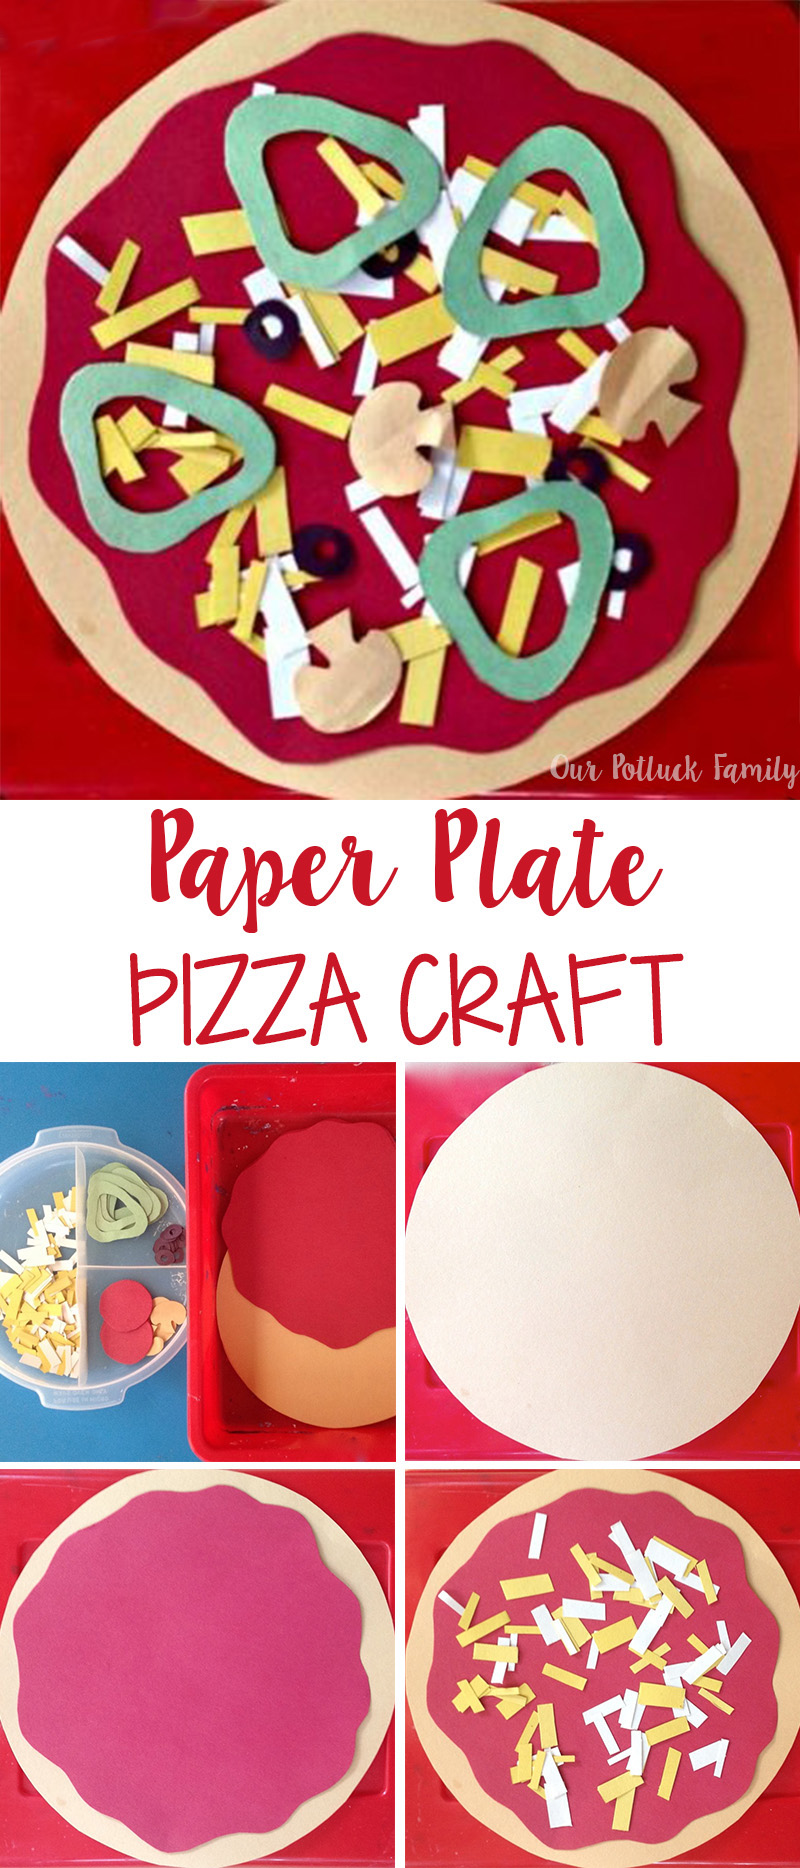 Kids Construction Sheet Craft Diy Paper Pizza Truly